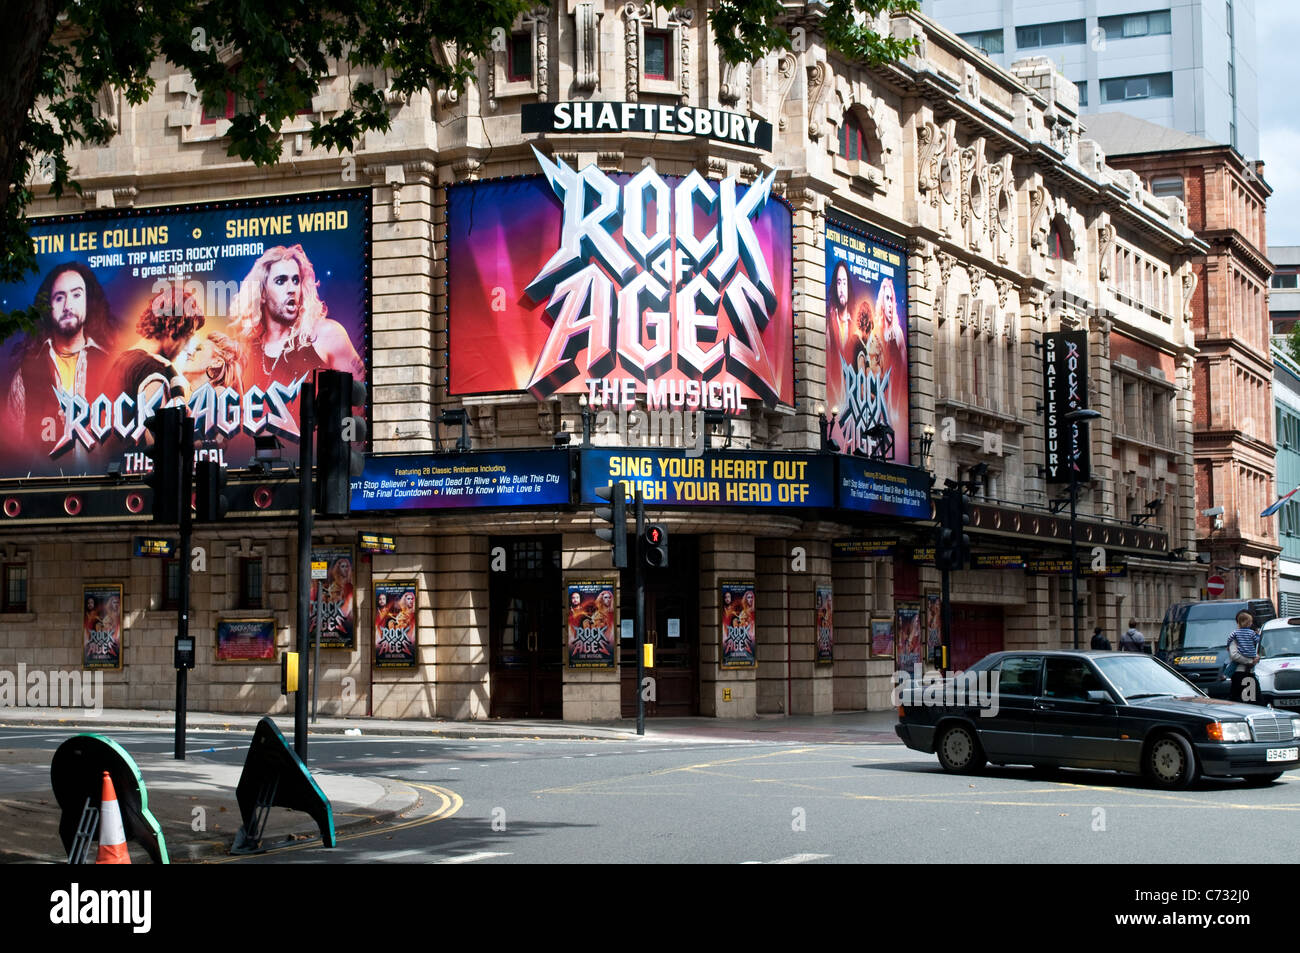 Shaftesbury Theatre on High Holborn showing Rock of Ages musical, London, UK - Stock Image